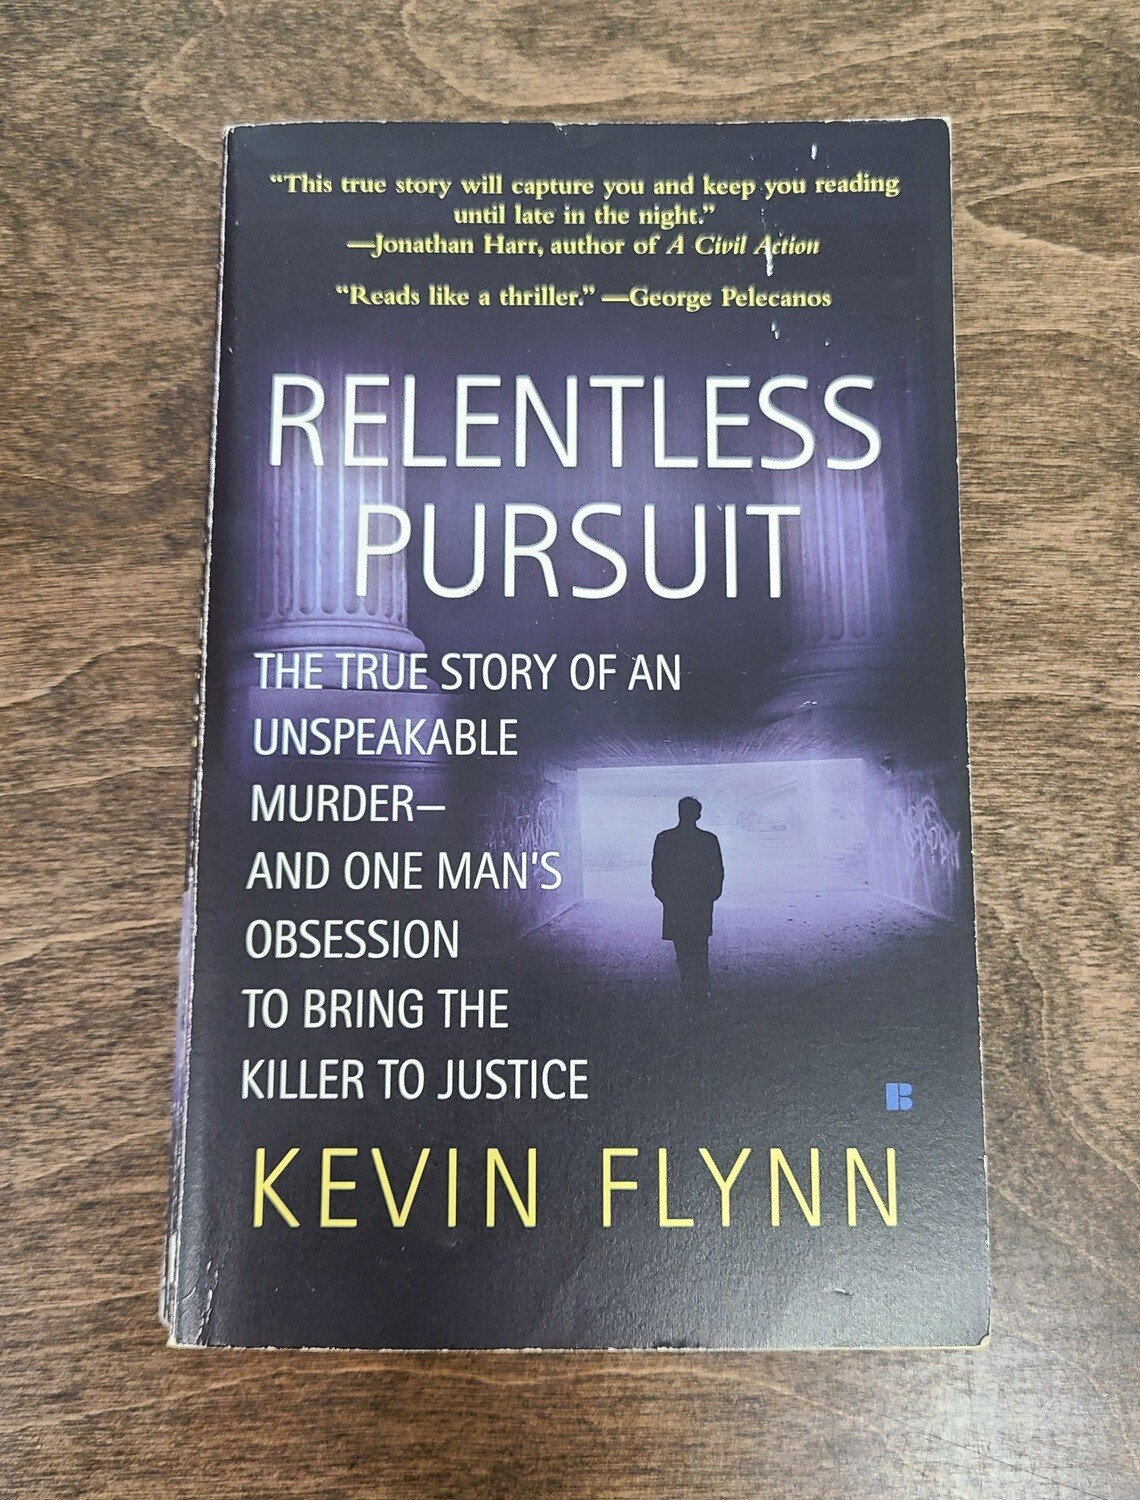 Relentless Pursuit by Kevin Flynn